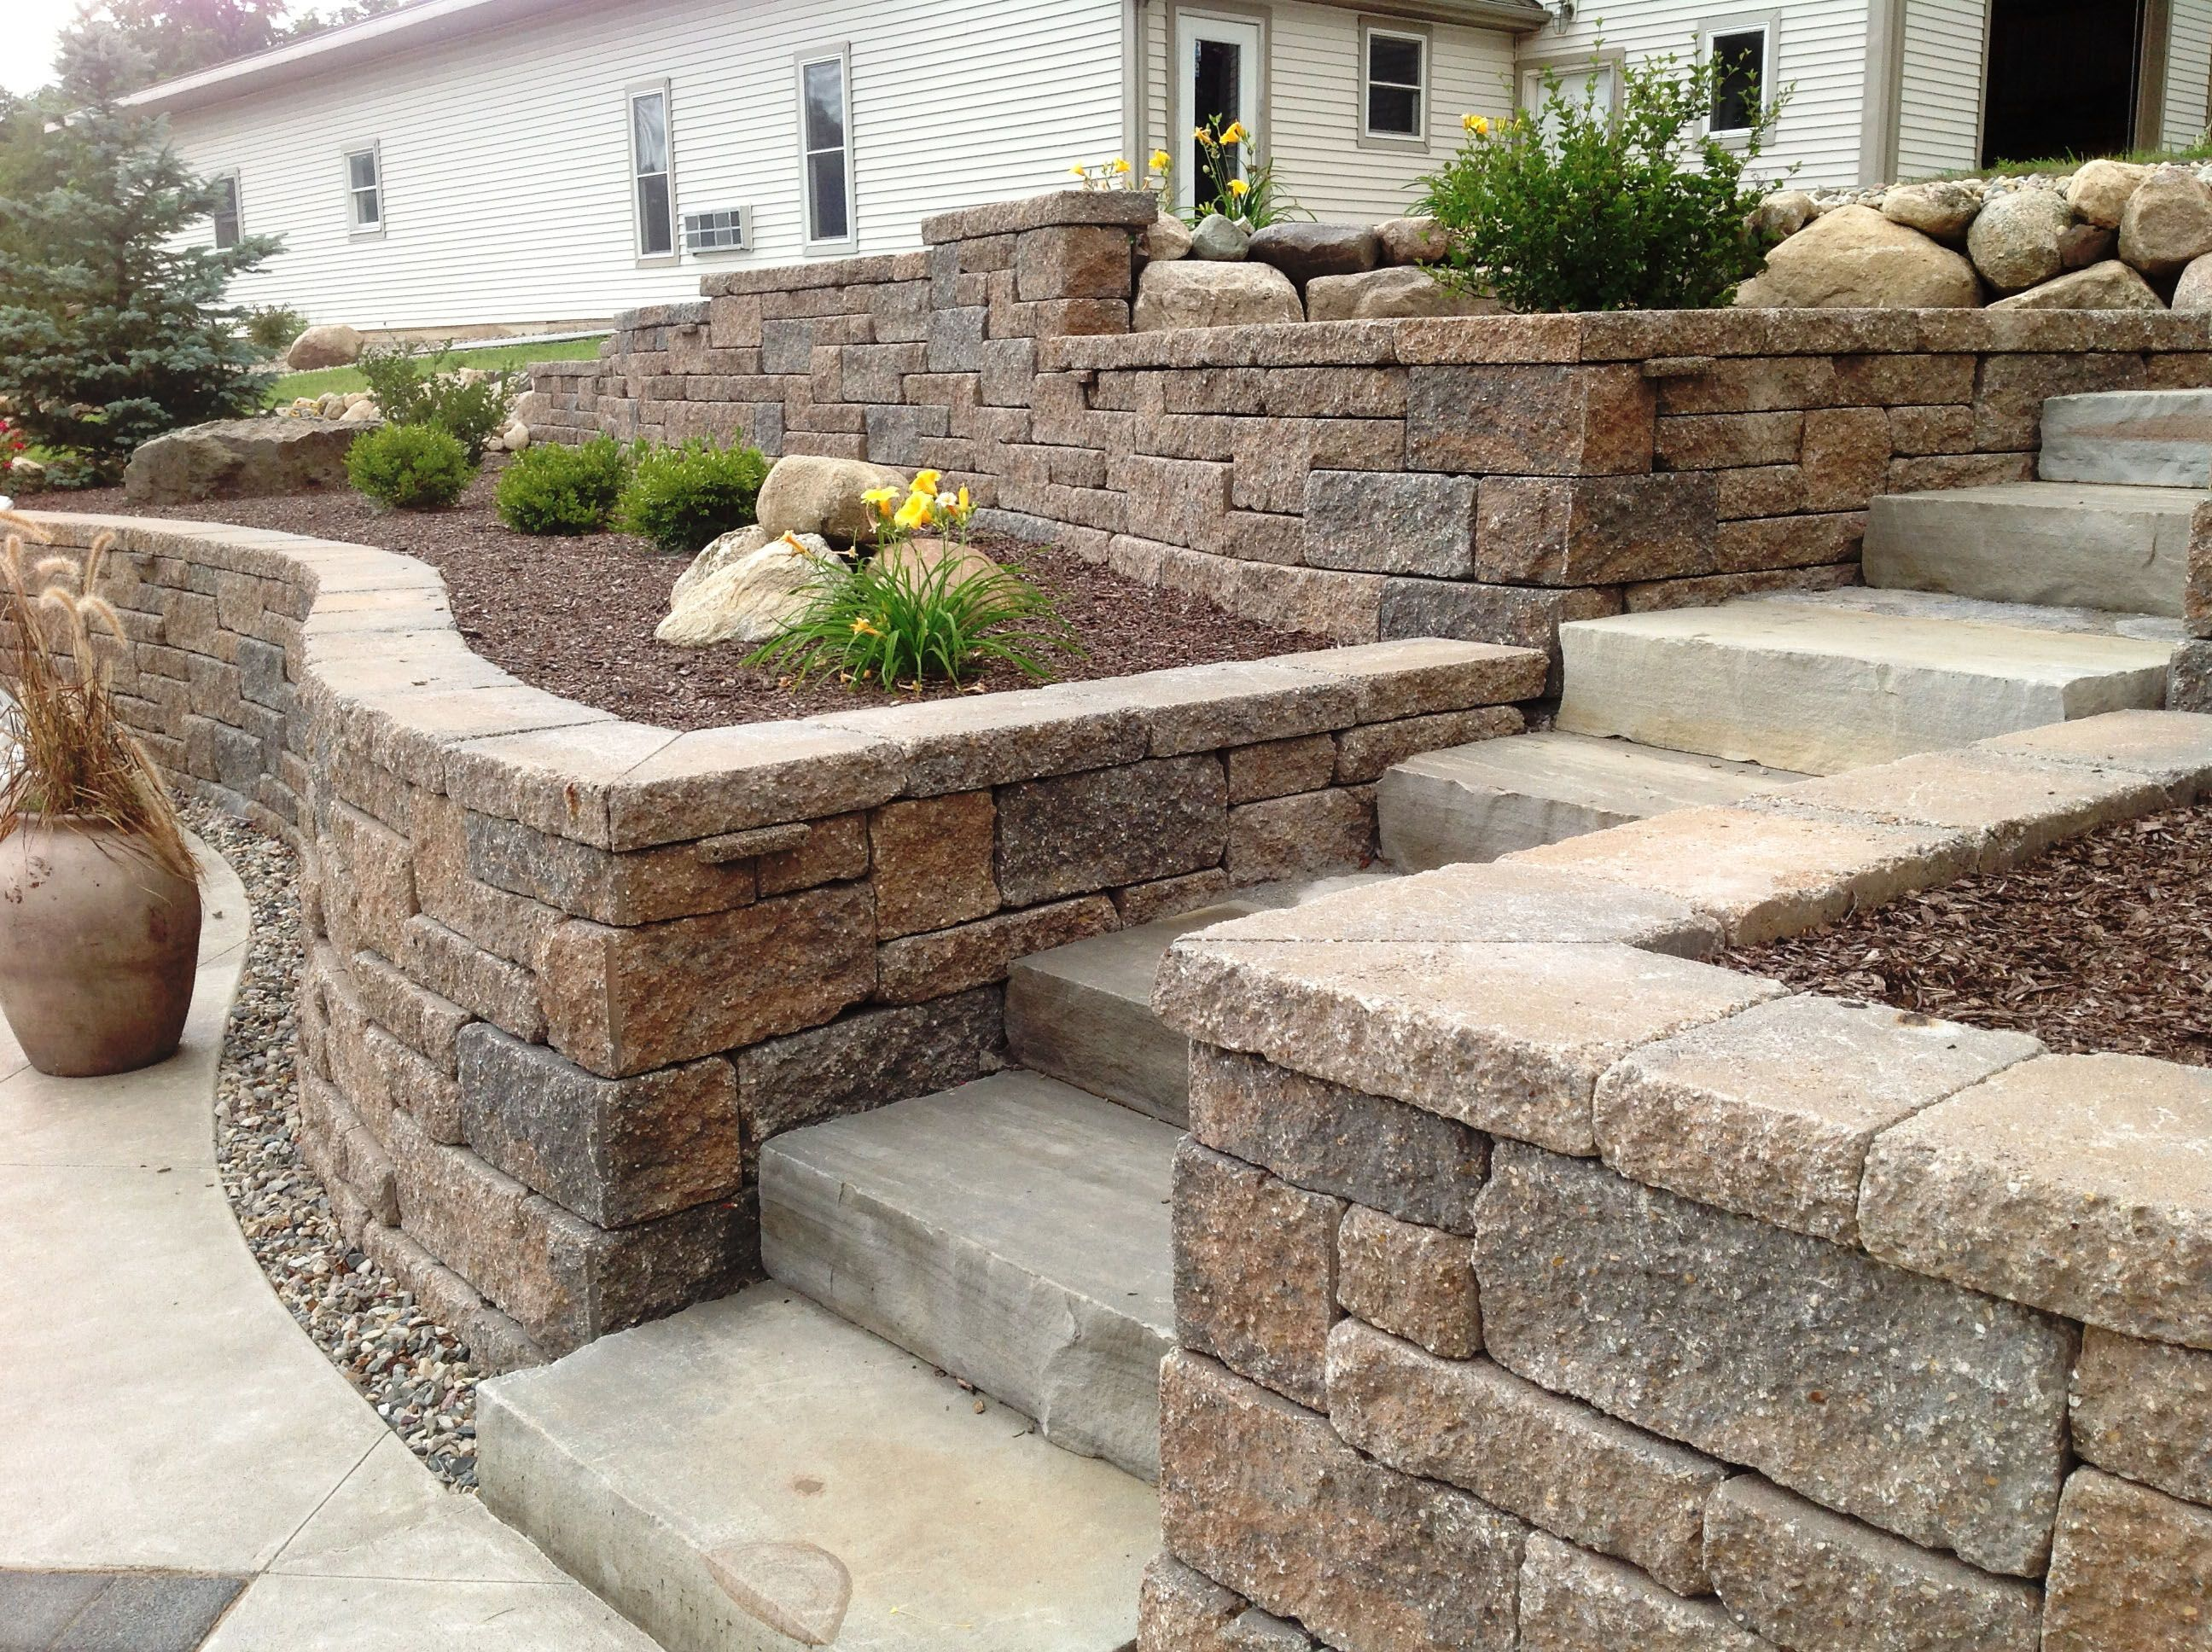 Retaining Walls Allan Block Wall Systems Landscaping Retaining Walls Front Yard Concrete Patio Designs